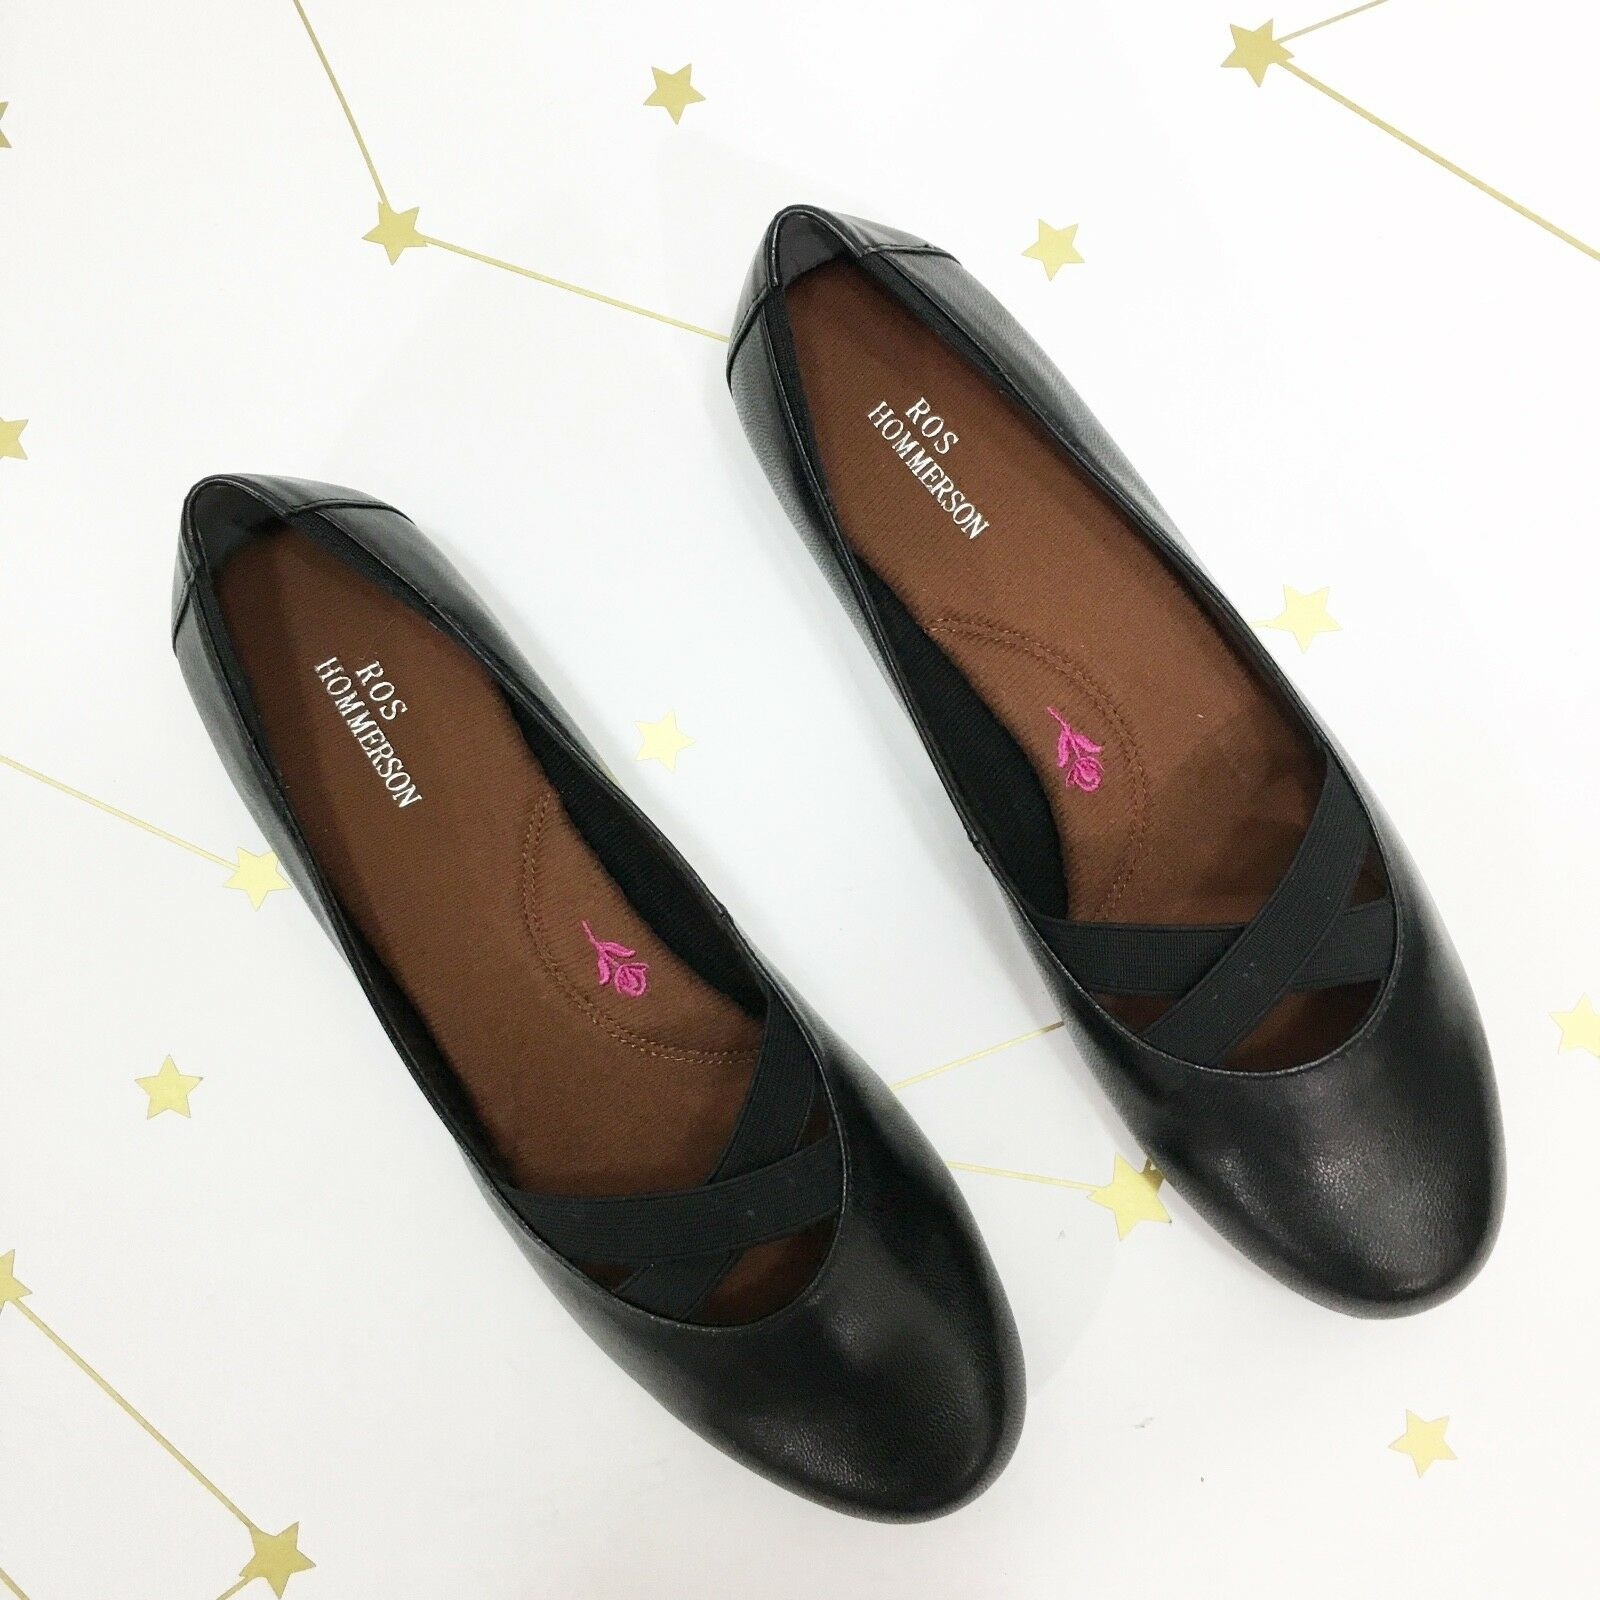 Ros Hommerson Flats Size 7 Narrow Black Leather Kidskin Ballet Round Toe Comfort